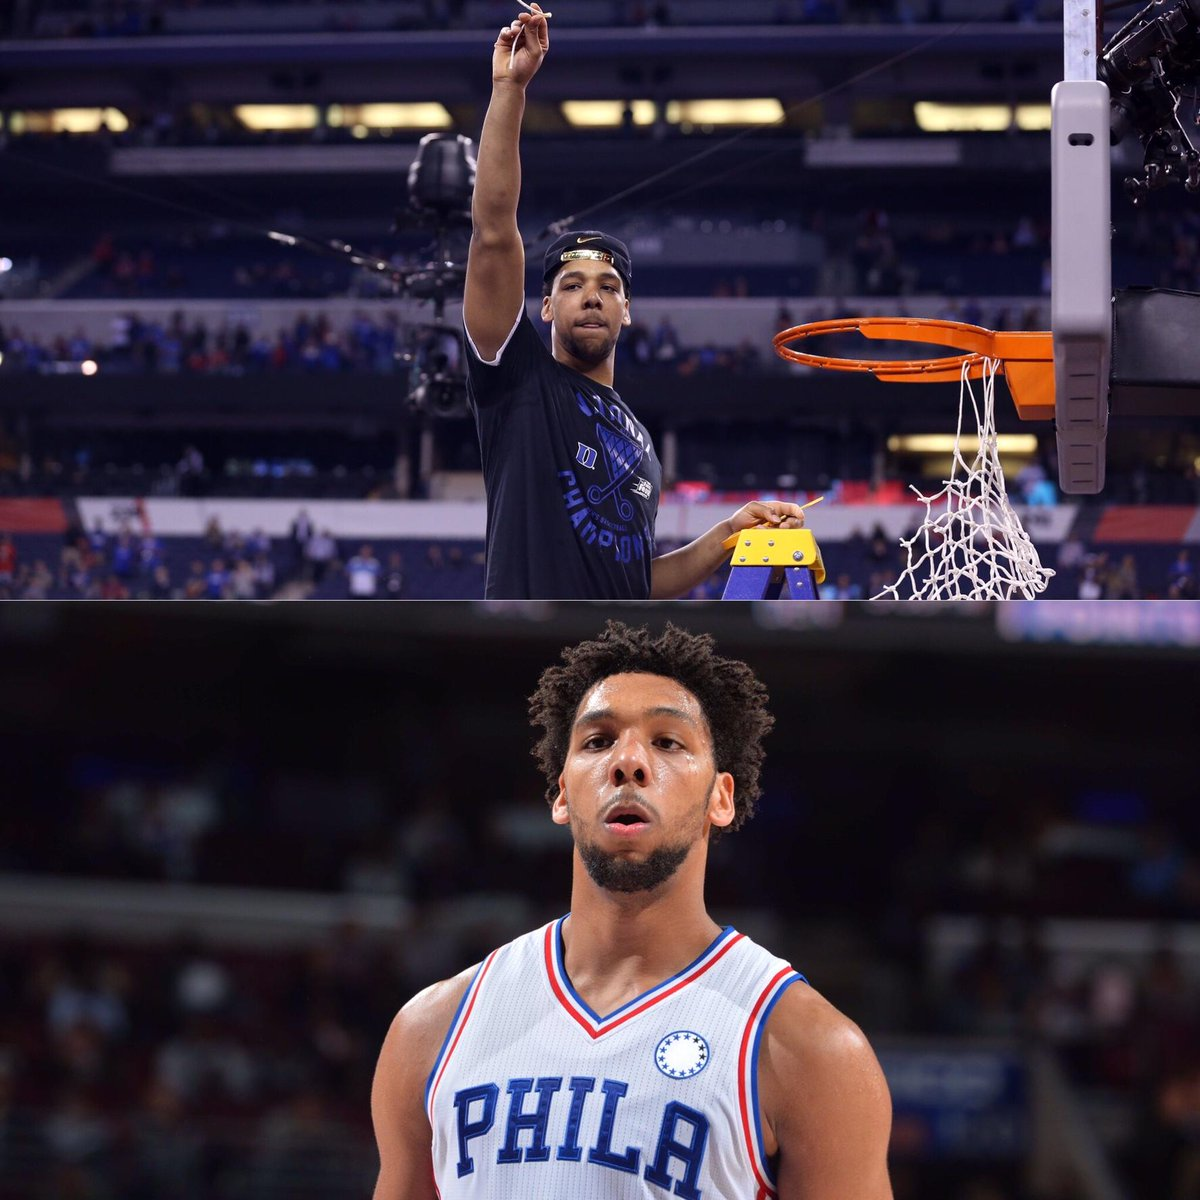 Crazy Stat of Day: Jahlil Okafor's college team has won a title more recently than his pro team has won a game.